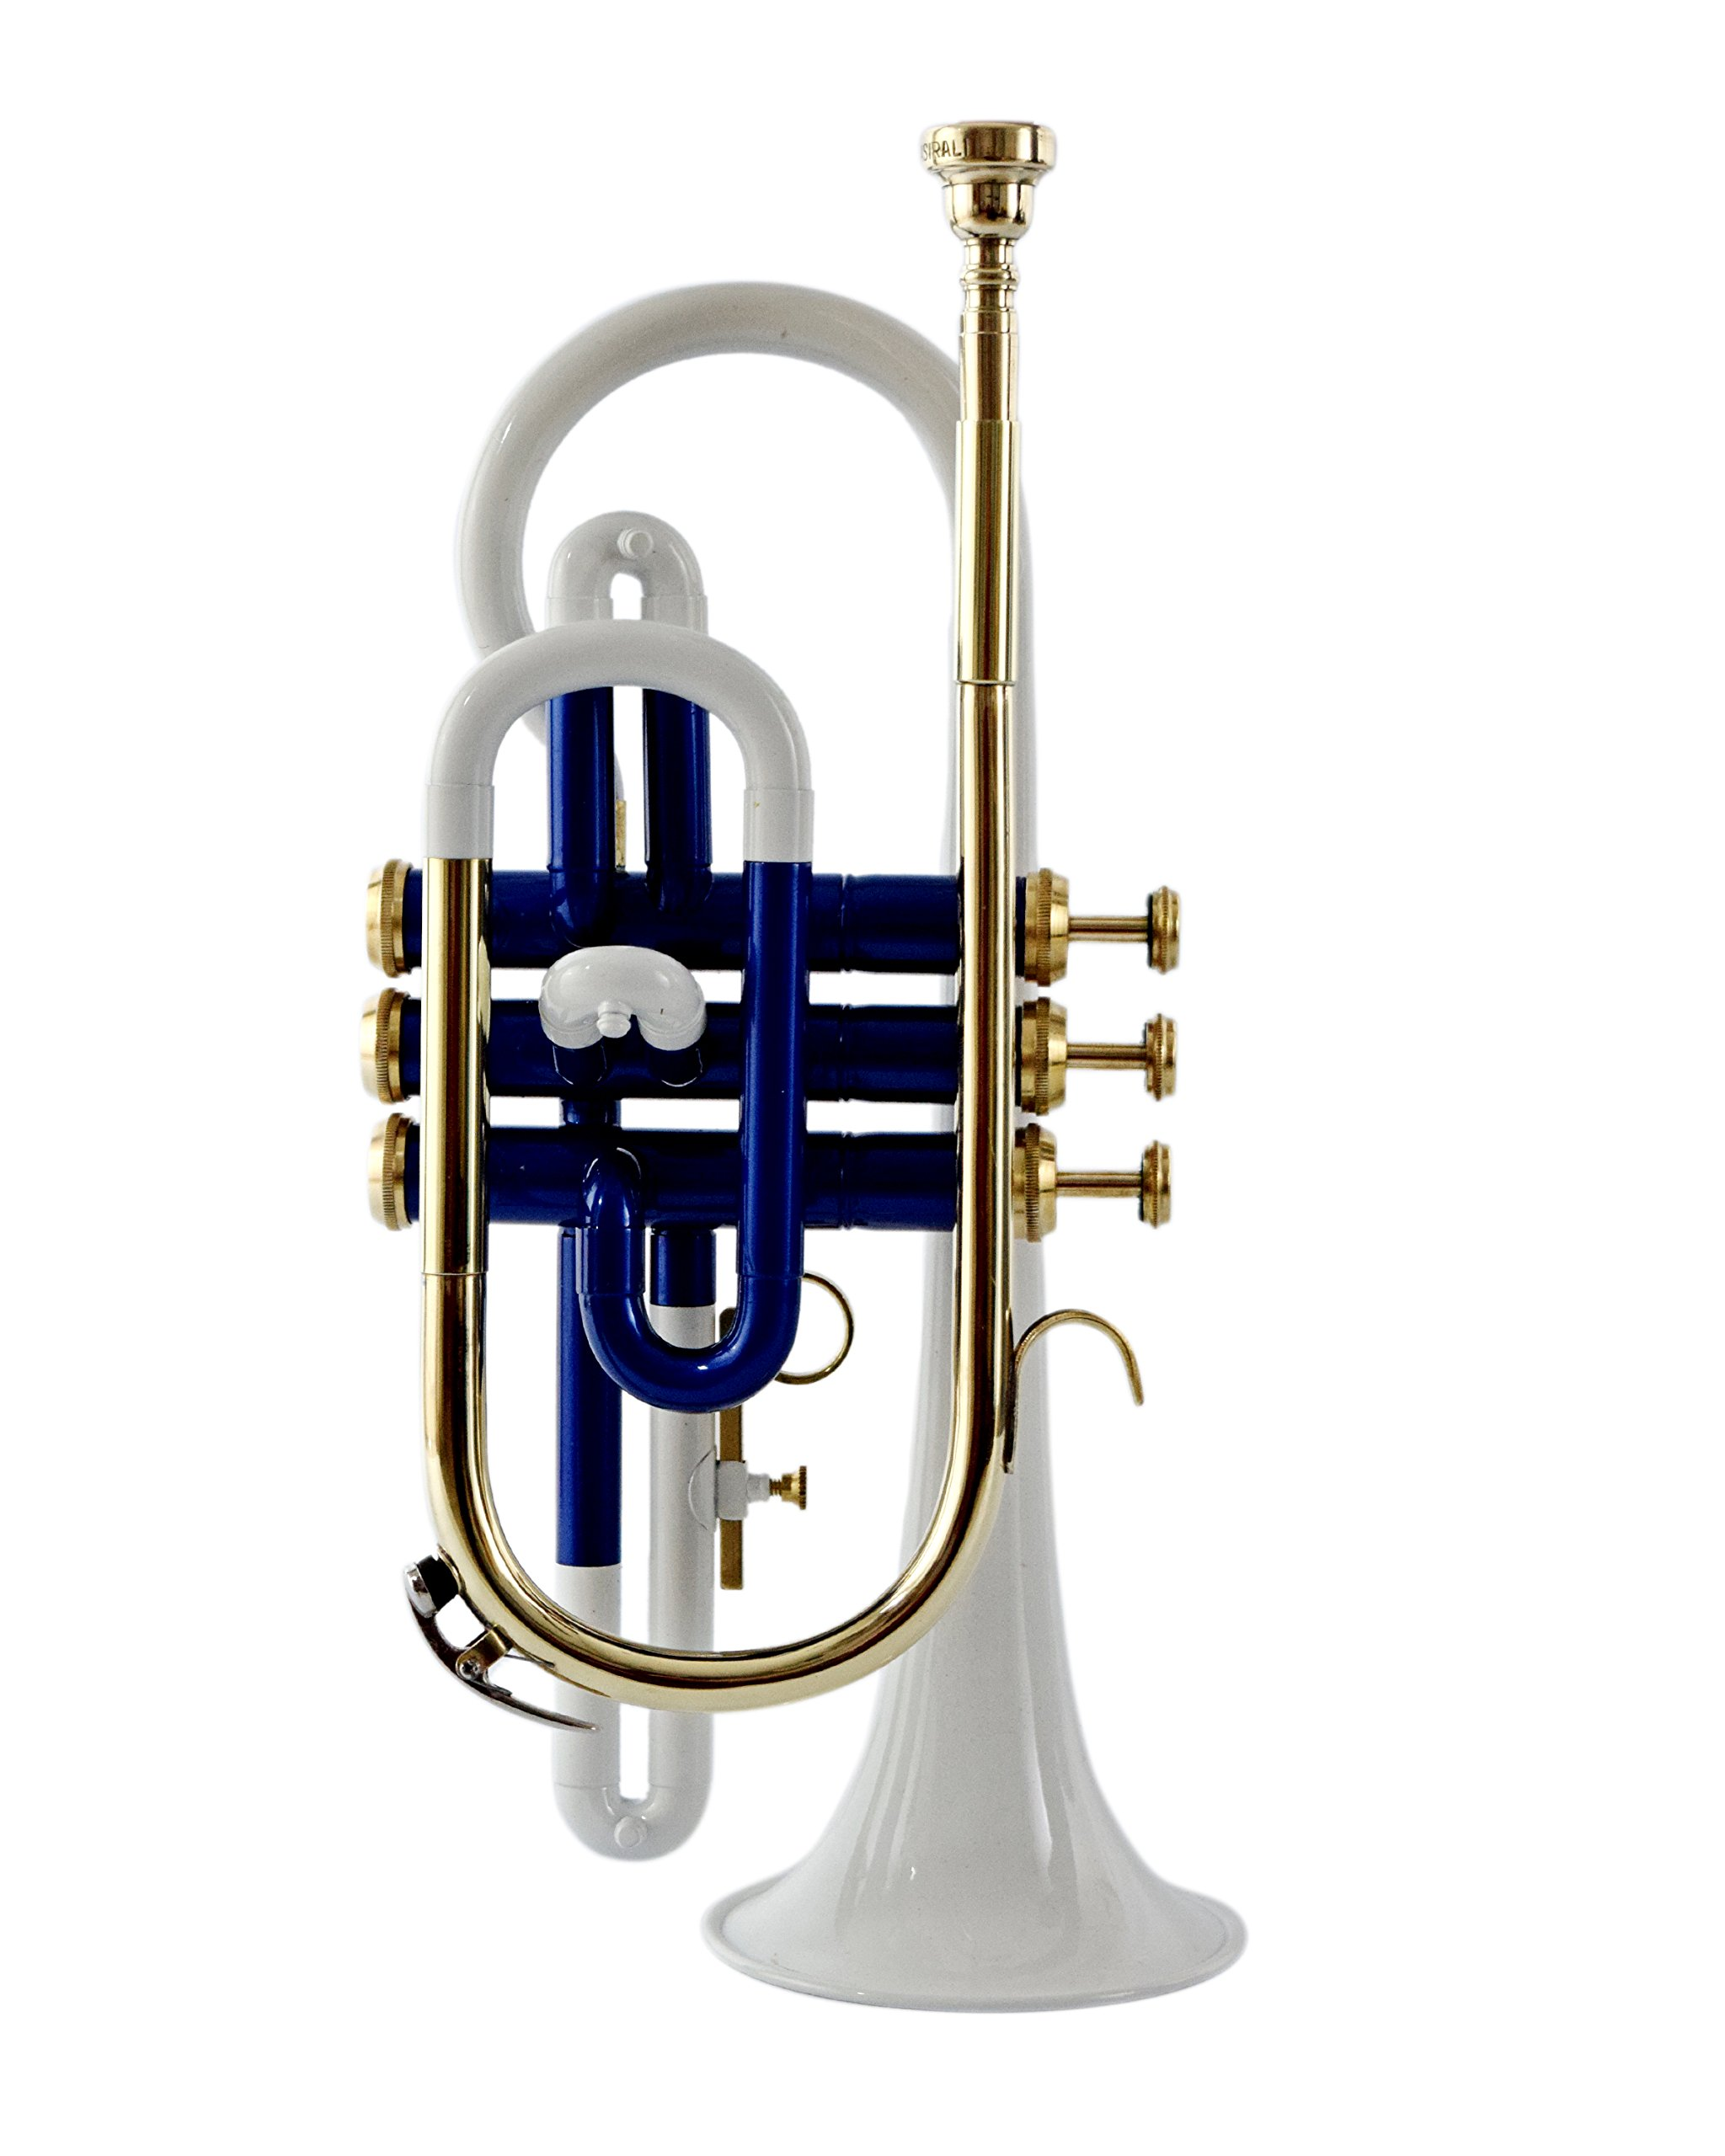 NASIR ALI BEAUTIFUL CORNET BP PITCH WHITE + BLUE COLORED WITH CASE AND MP by NASIR ALI (Image #4)